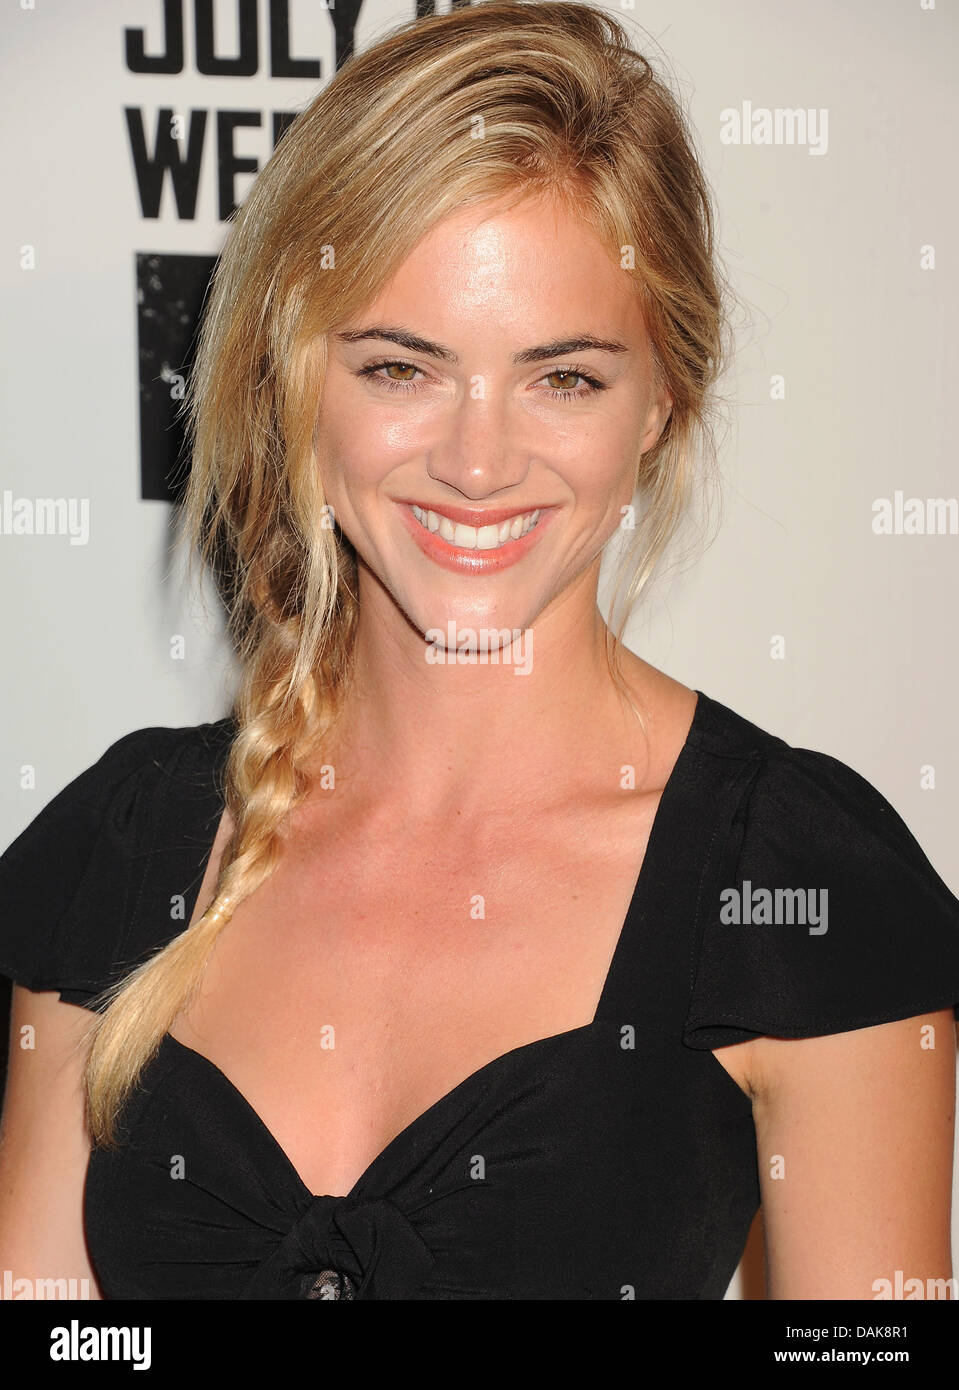 Emily wickersham stock photos emily wickersham stock - Emily wickersham gardener of eden ...